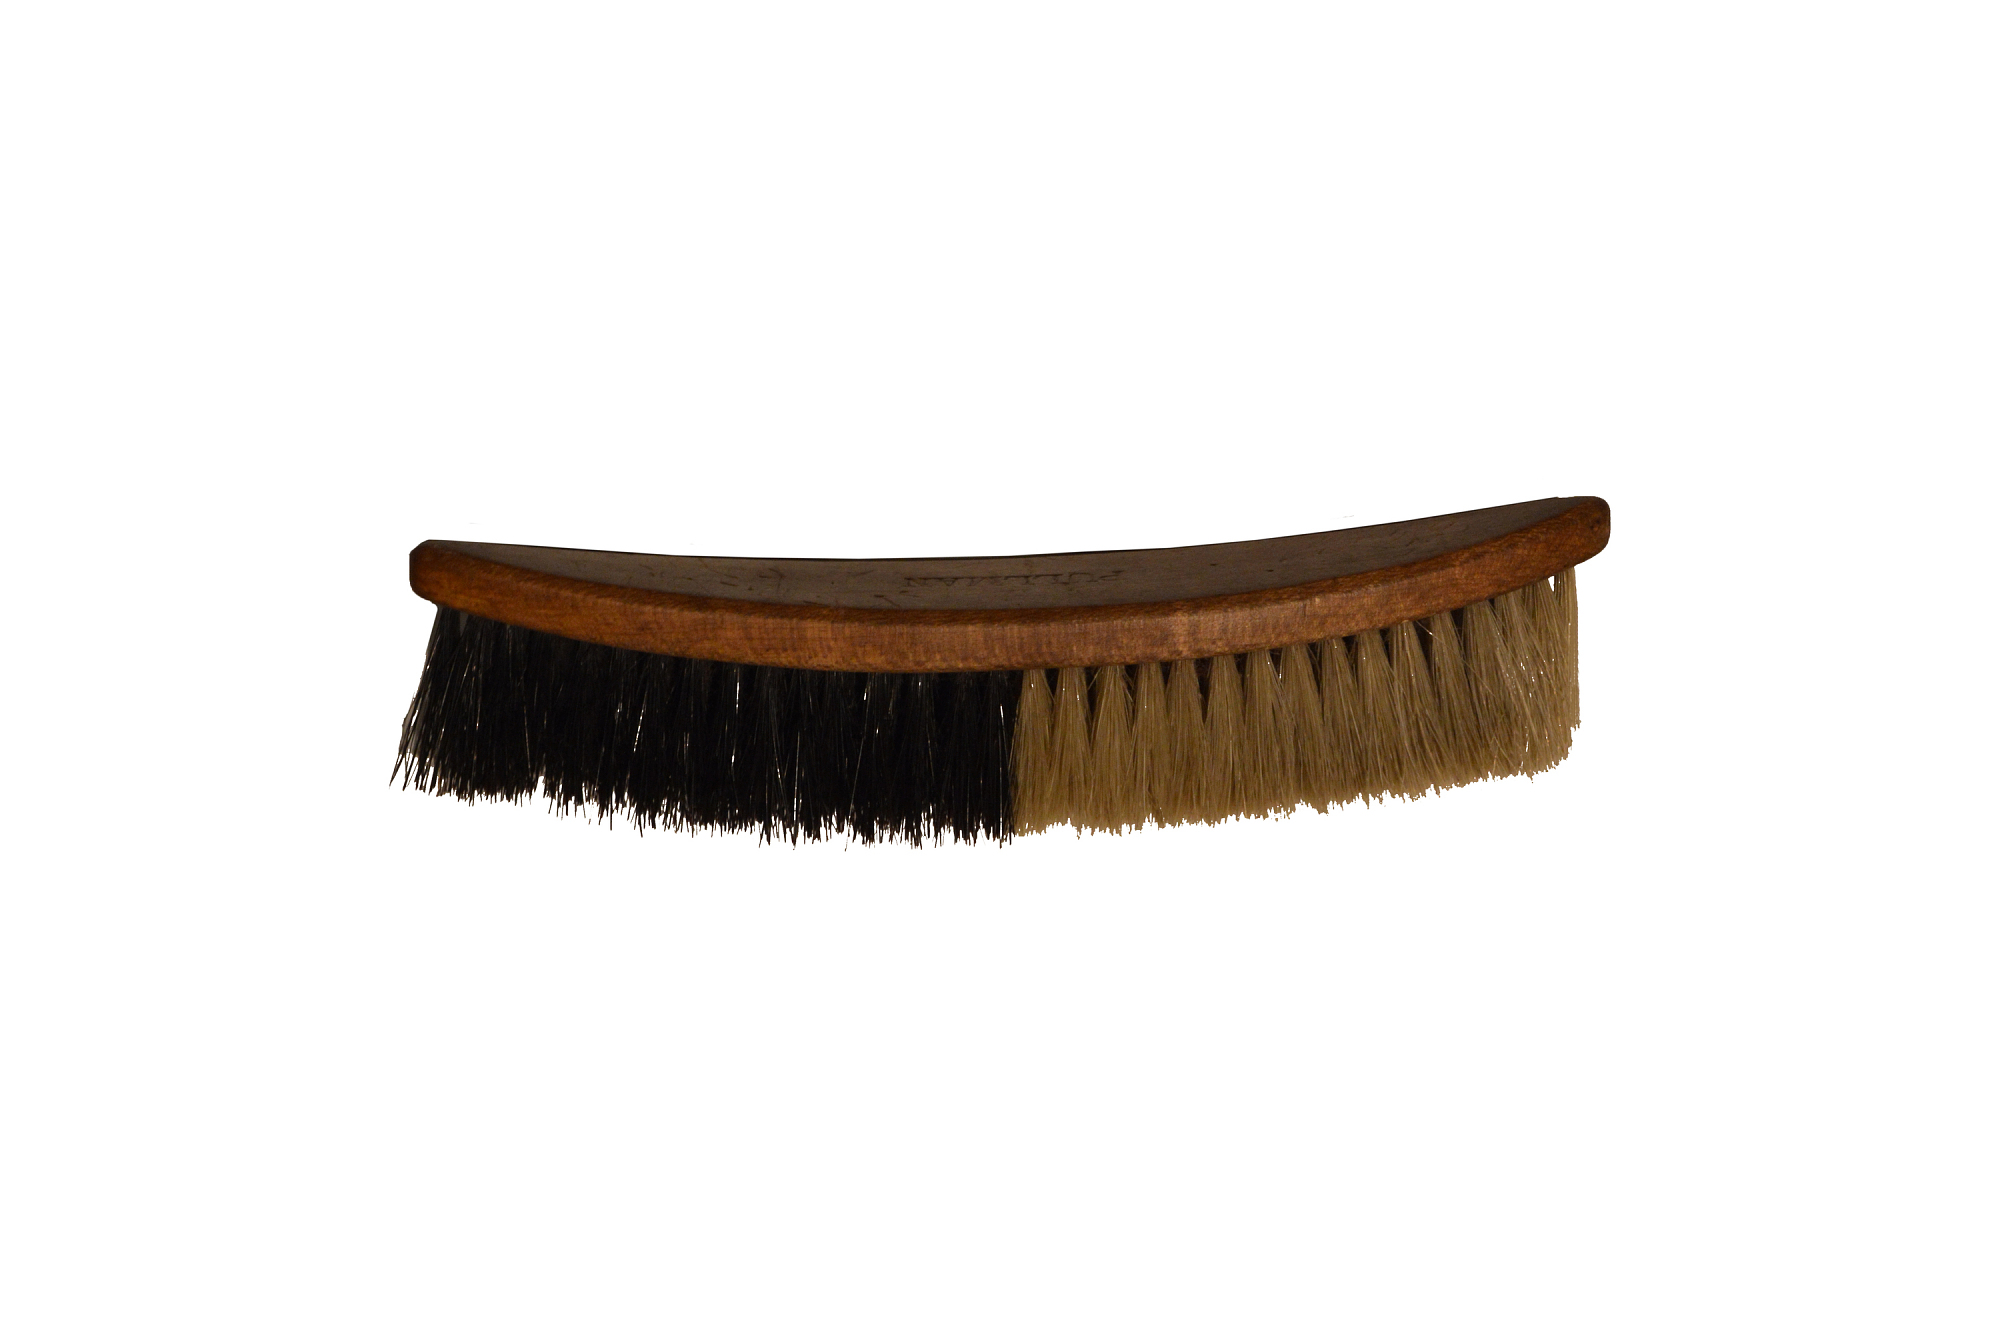 Pullman Porter Clothes Brush